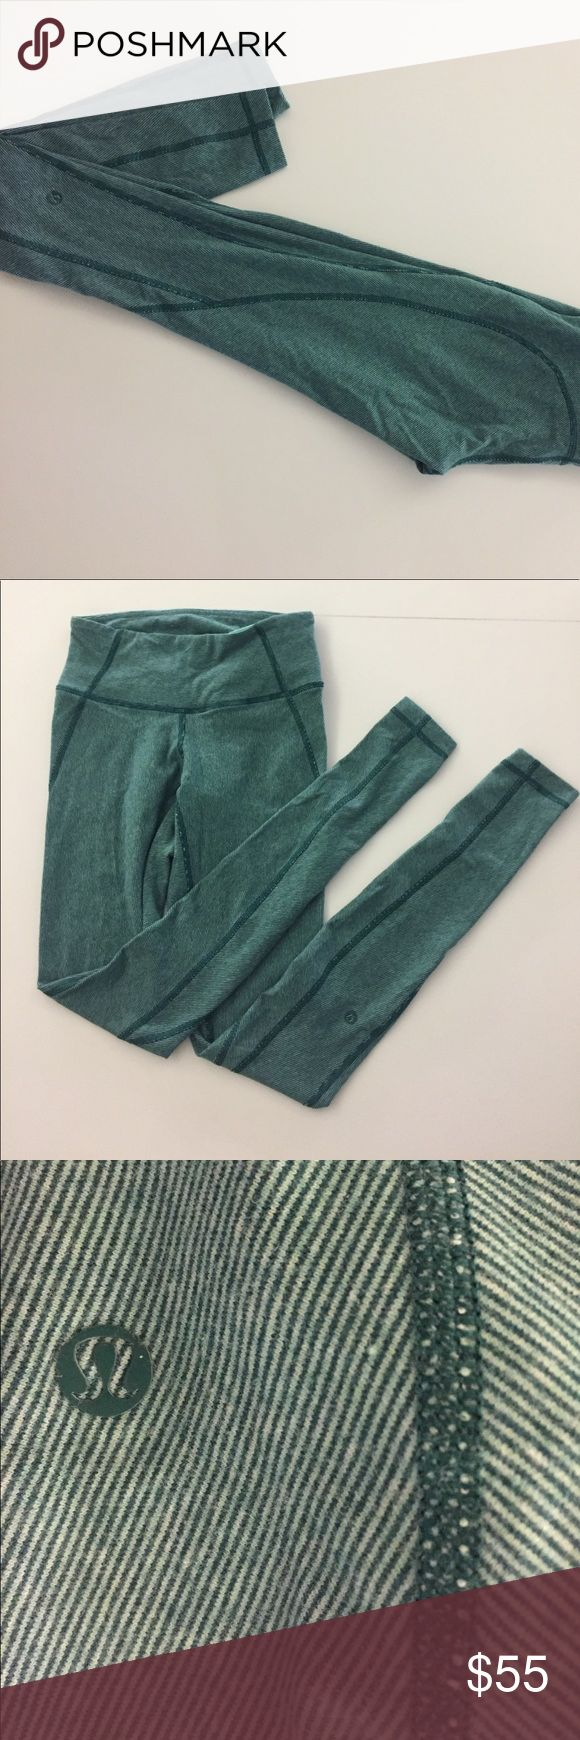 Mint Green Lululemon leggings Almost new, mint green lululemon leggings. Open to offers!! Want to sell quick:) super soft, super comfy, pinstripe design lululemon athletica Pants Leggings